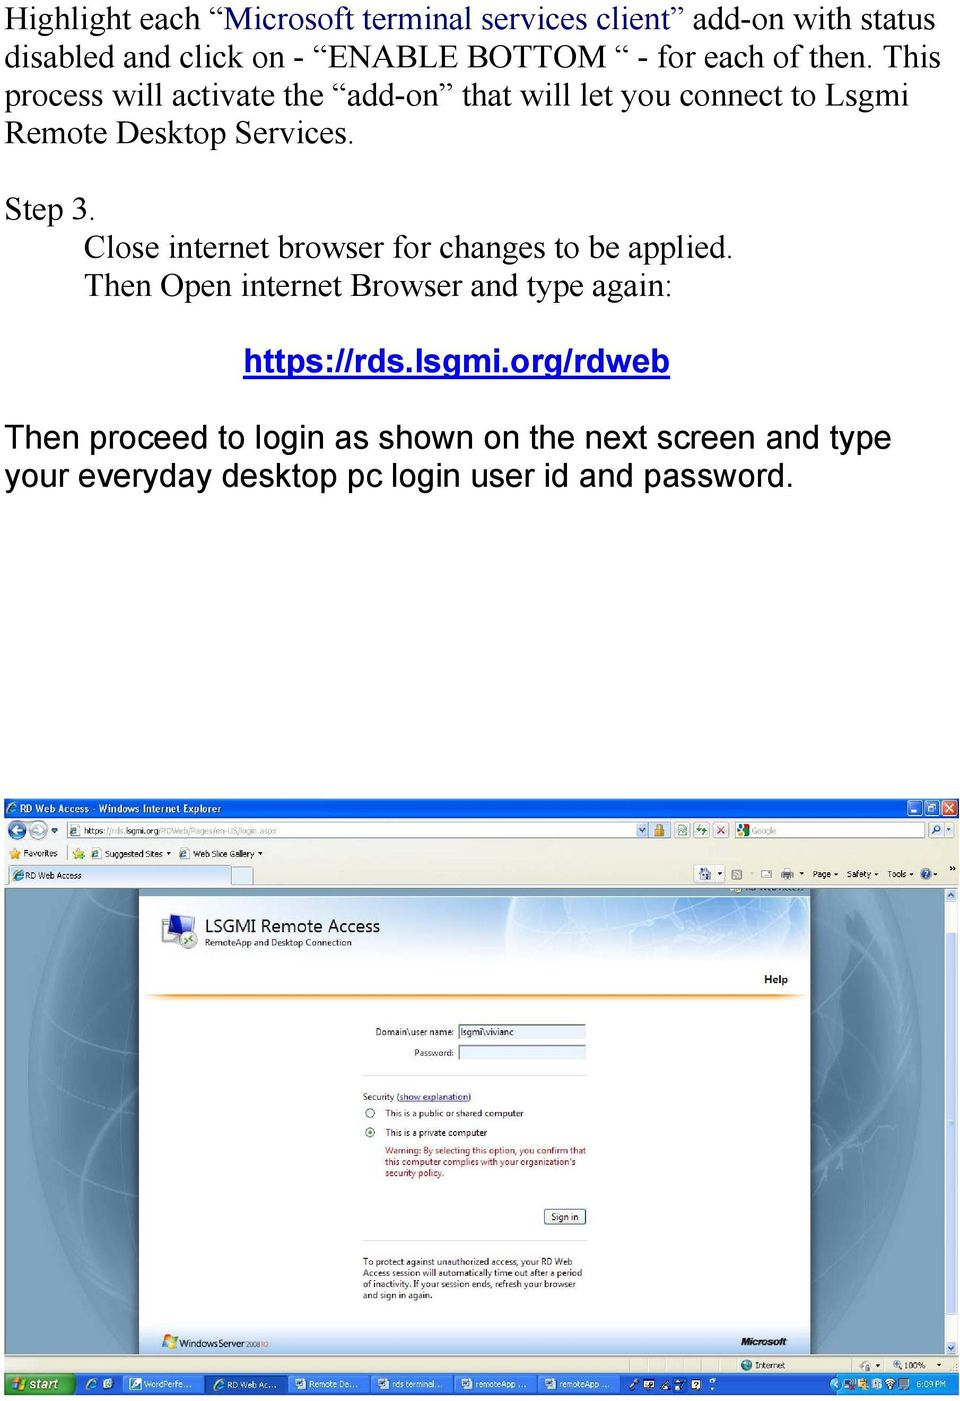 Step 3. Close internet browser for changes to be applied. Then Open internet Browser and type again: https://rds.